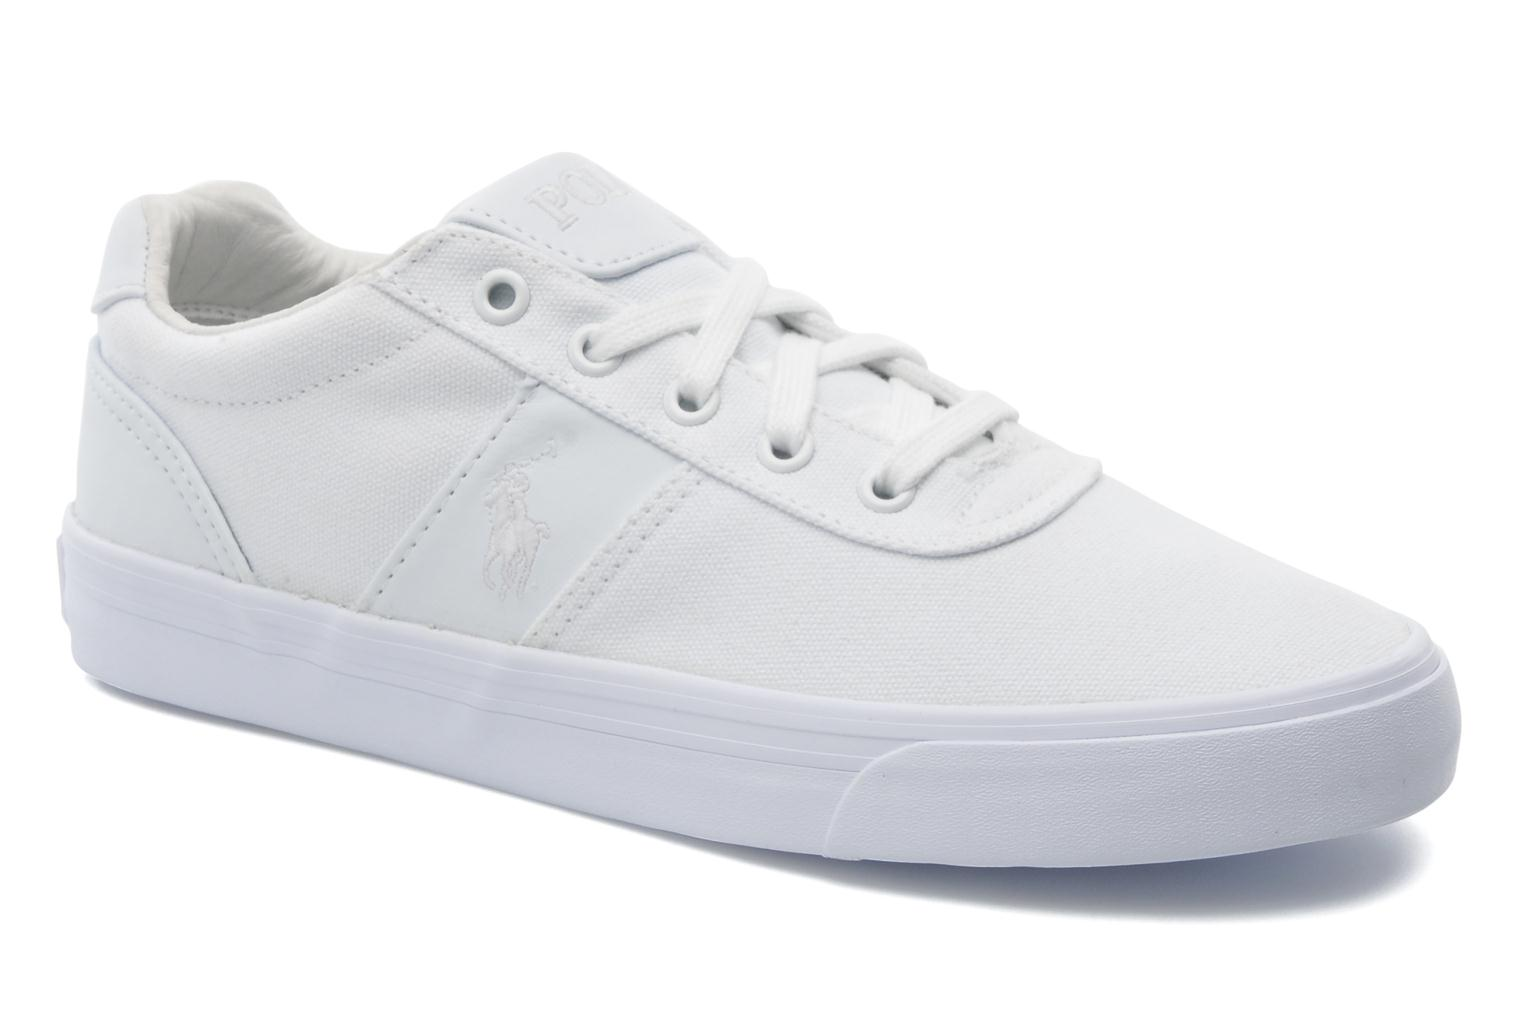 Hanford canvas Pure white